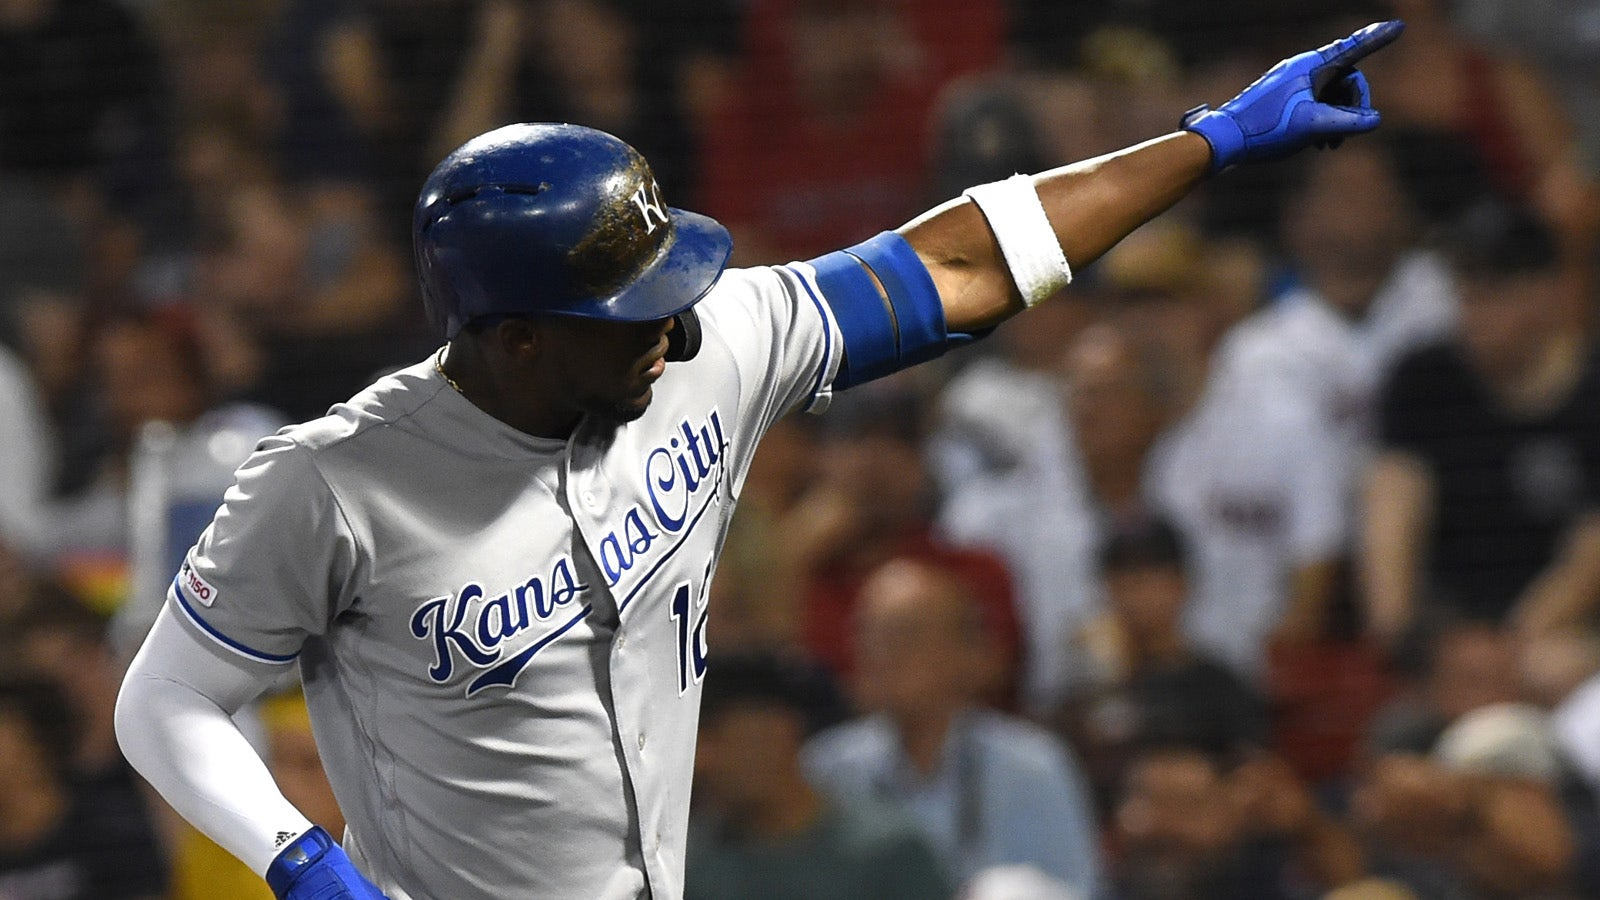 reputable site 4a0dd 500a2 Soler's offensive barrage earns him AL Player of the Week ...